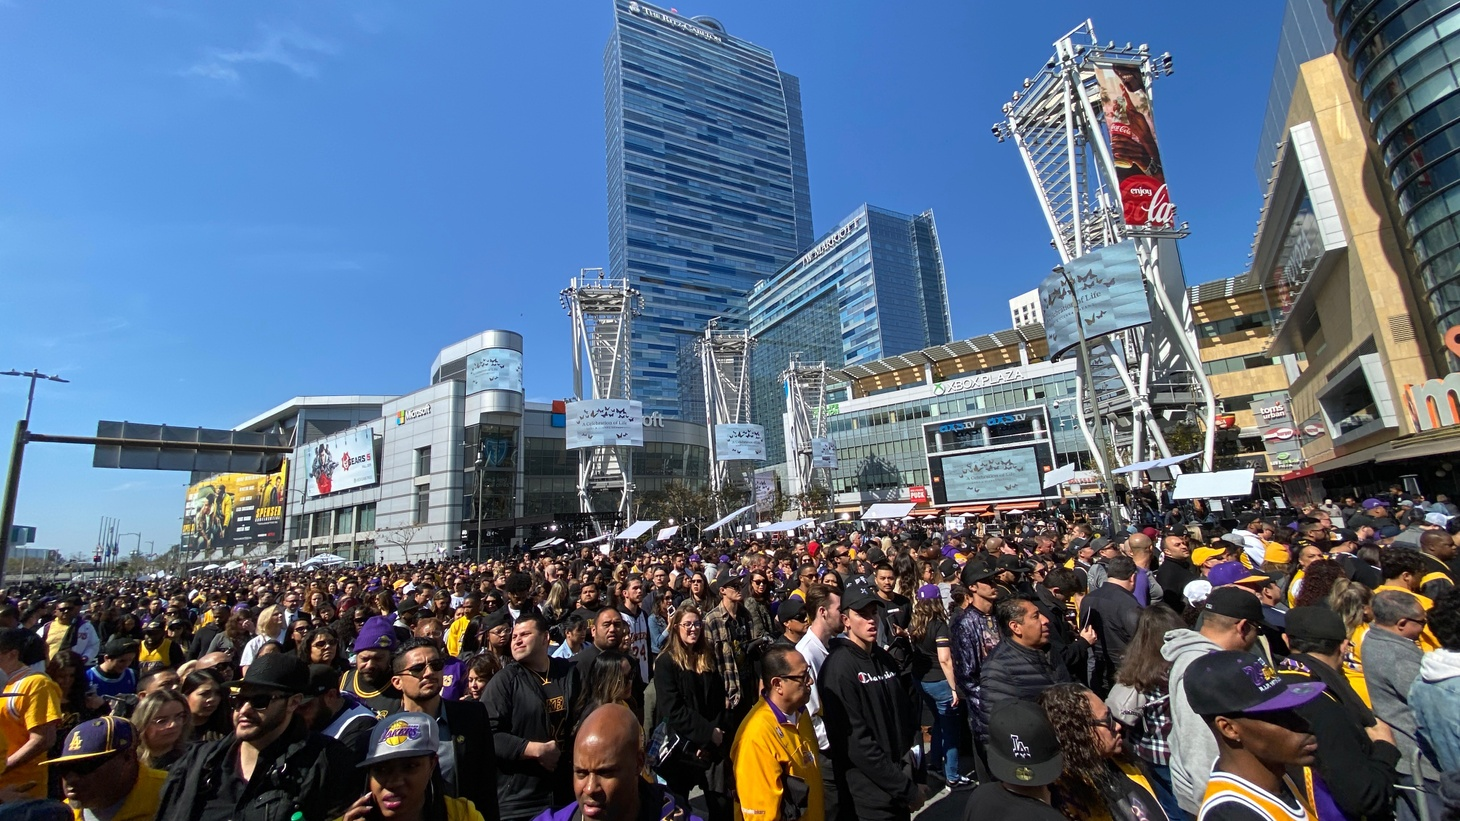 Crowd exiting the Staples Center after the Kobe Bryant memorial, Feb. 24, 2020.